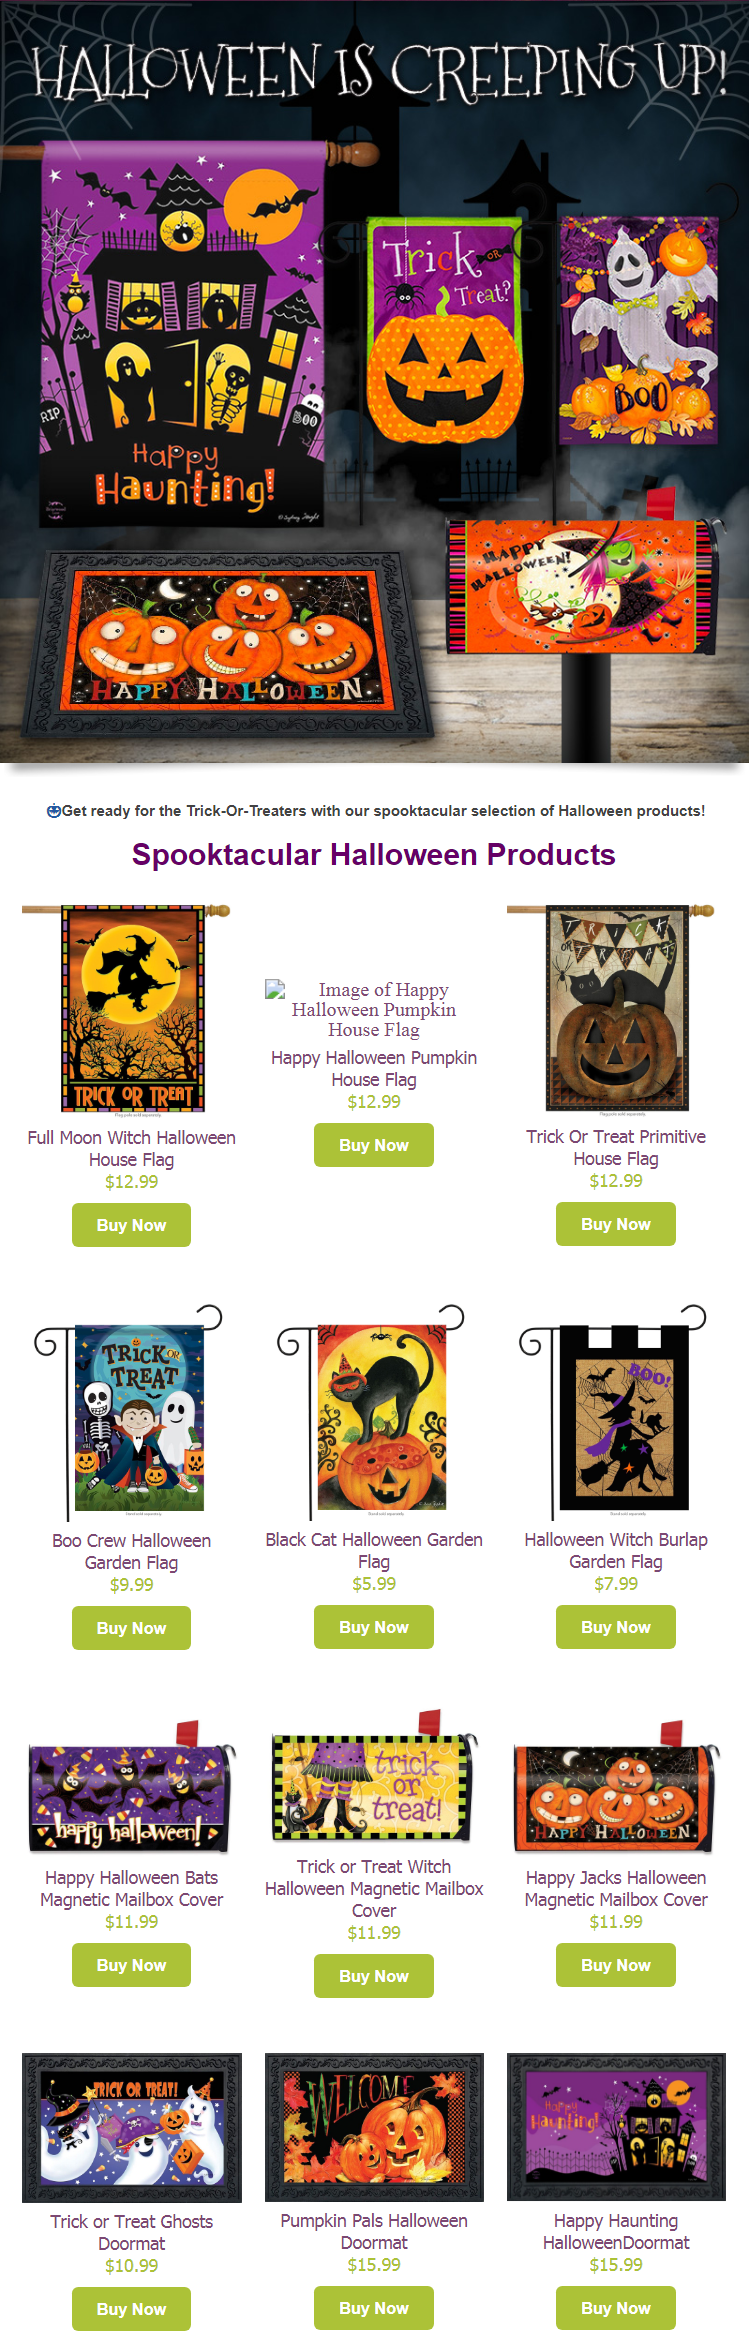 Get ready for the trick-or-treaters with the spooktacular selection of Halloween products!